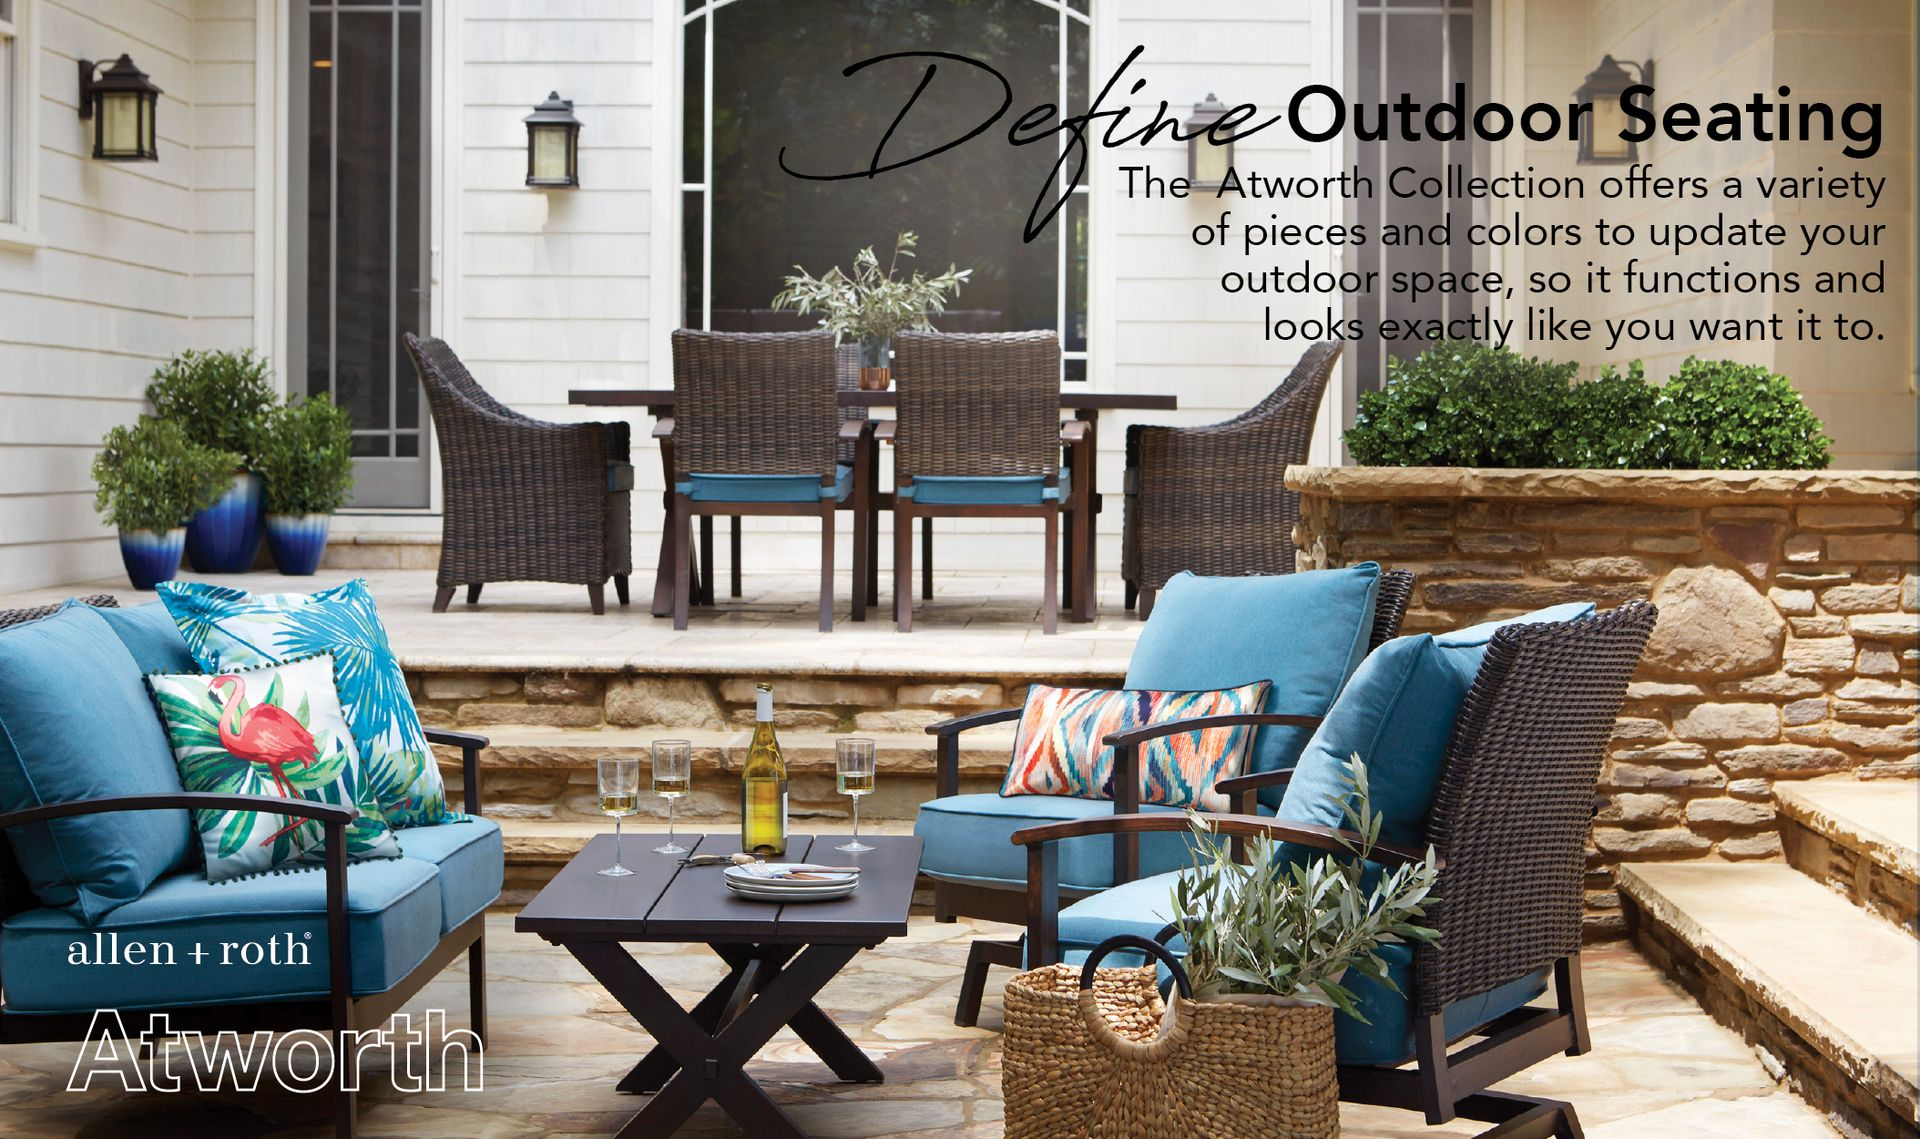 Allen Roth Atworth Outdoor Sofa With Cushion And Peacock Blue Aluminum Frame Lowes Com Patio Lowes Patio Furniture Conversation Set Patio